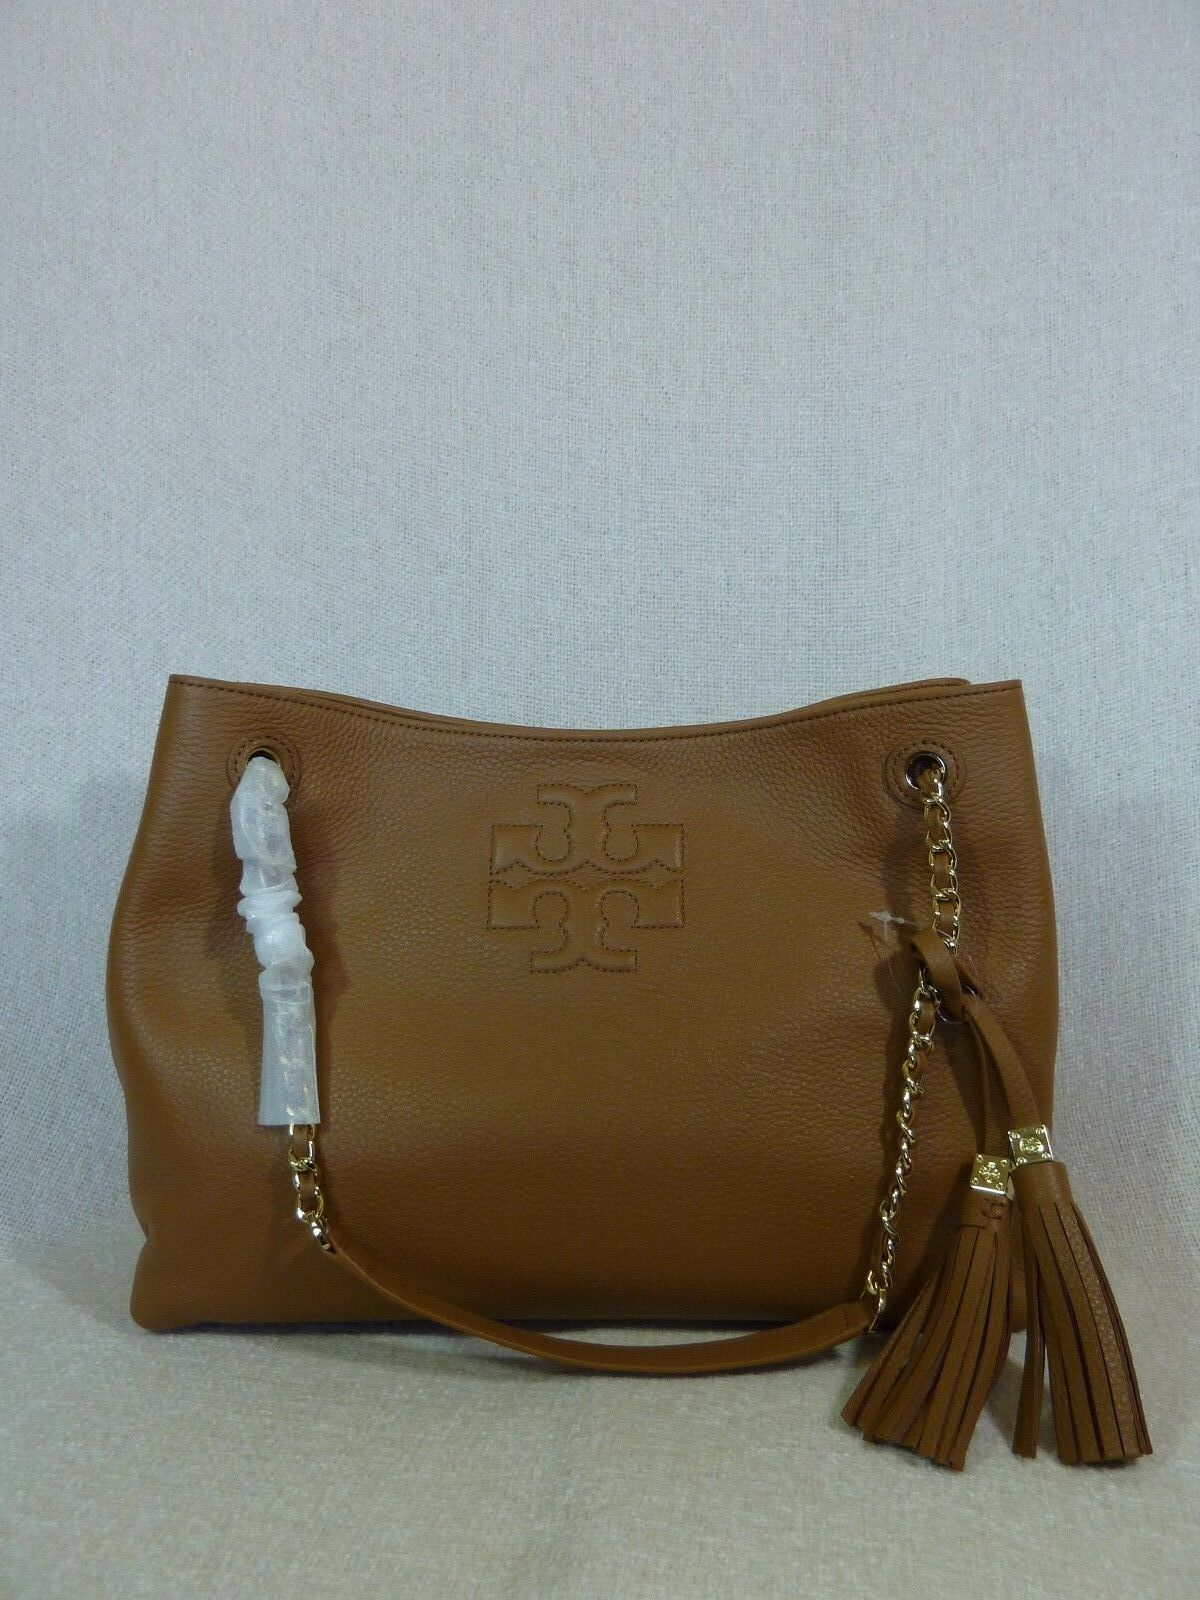 NWT Tory Burch Bark Brown Pebbled Leather Thea Chain Slouchy Tote $495 image 5